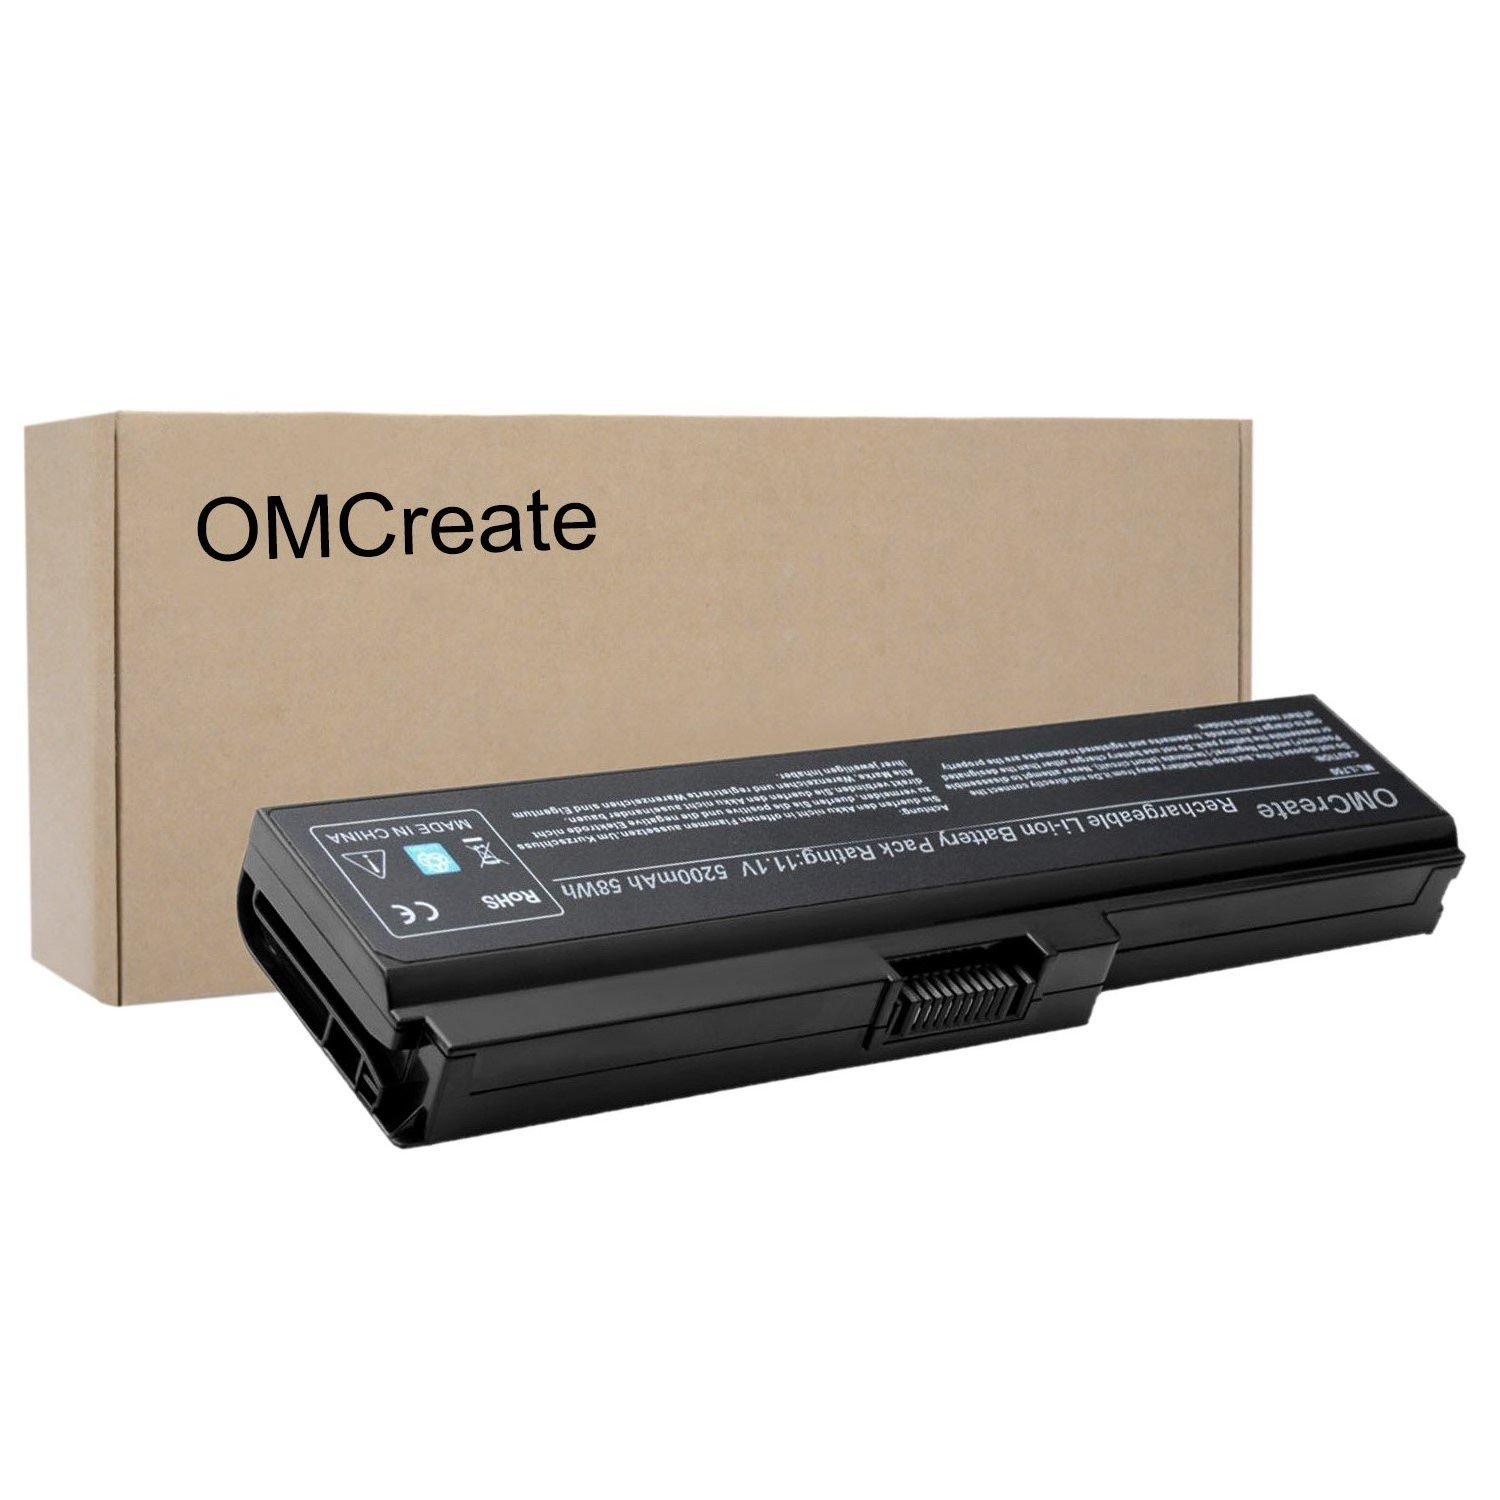 OMCreate New Laptop Battery for Toshiba PA3817U-1BRS PA3819U-1BRS Toshiba Satellite C655 L600 L675 L675D L700 L745 L750 L750D L755 L755D M640 M645 P745 Series